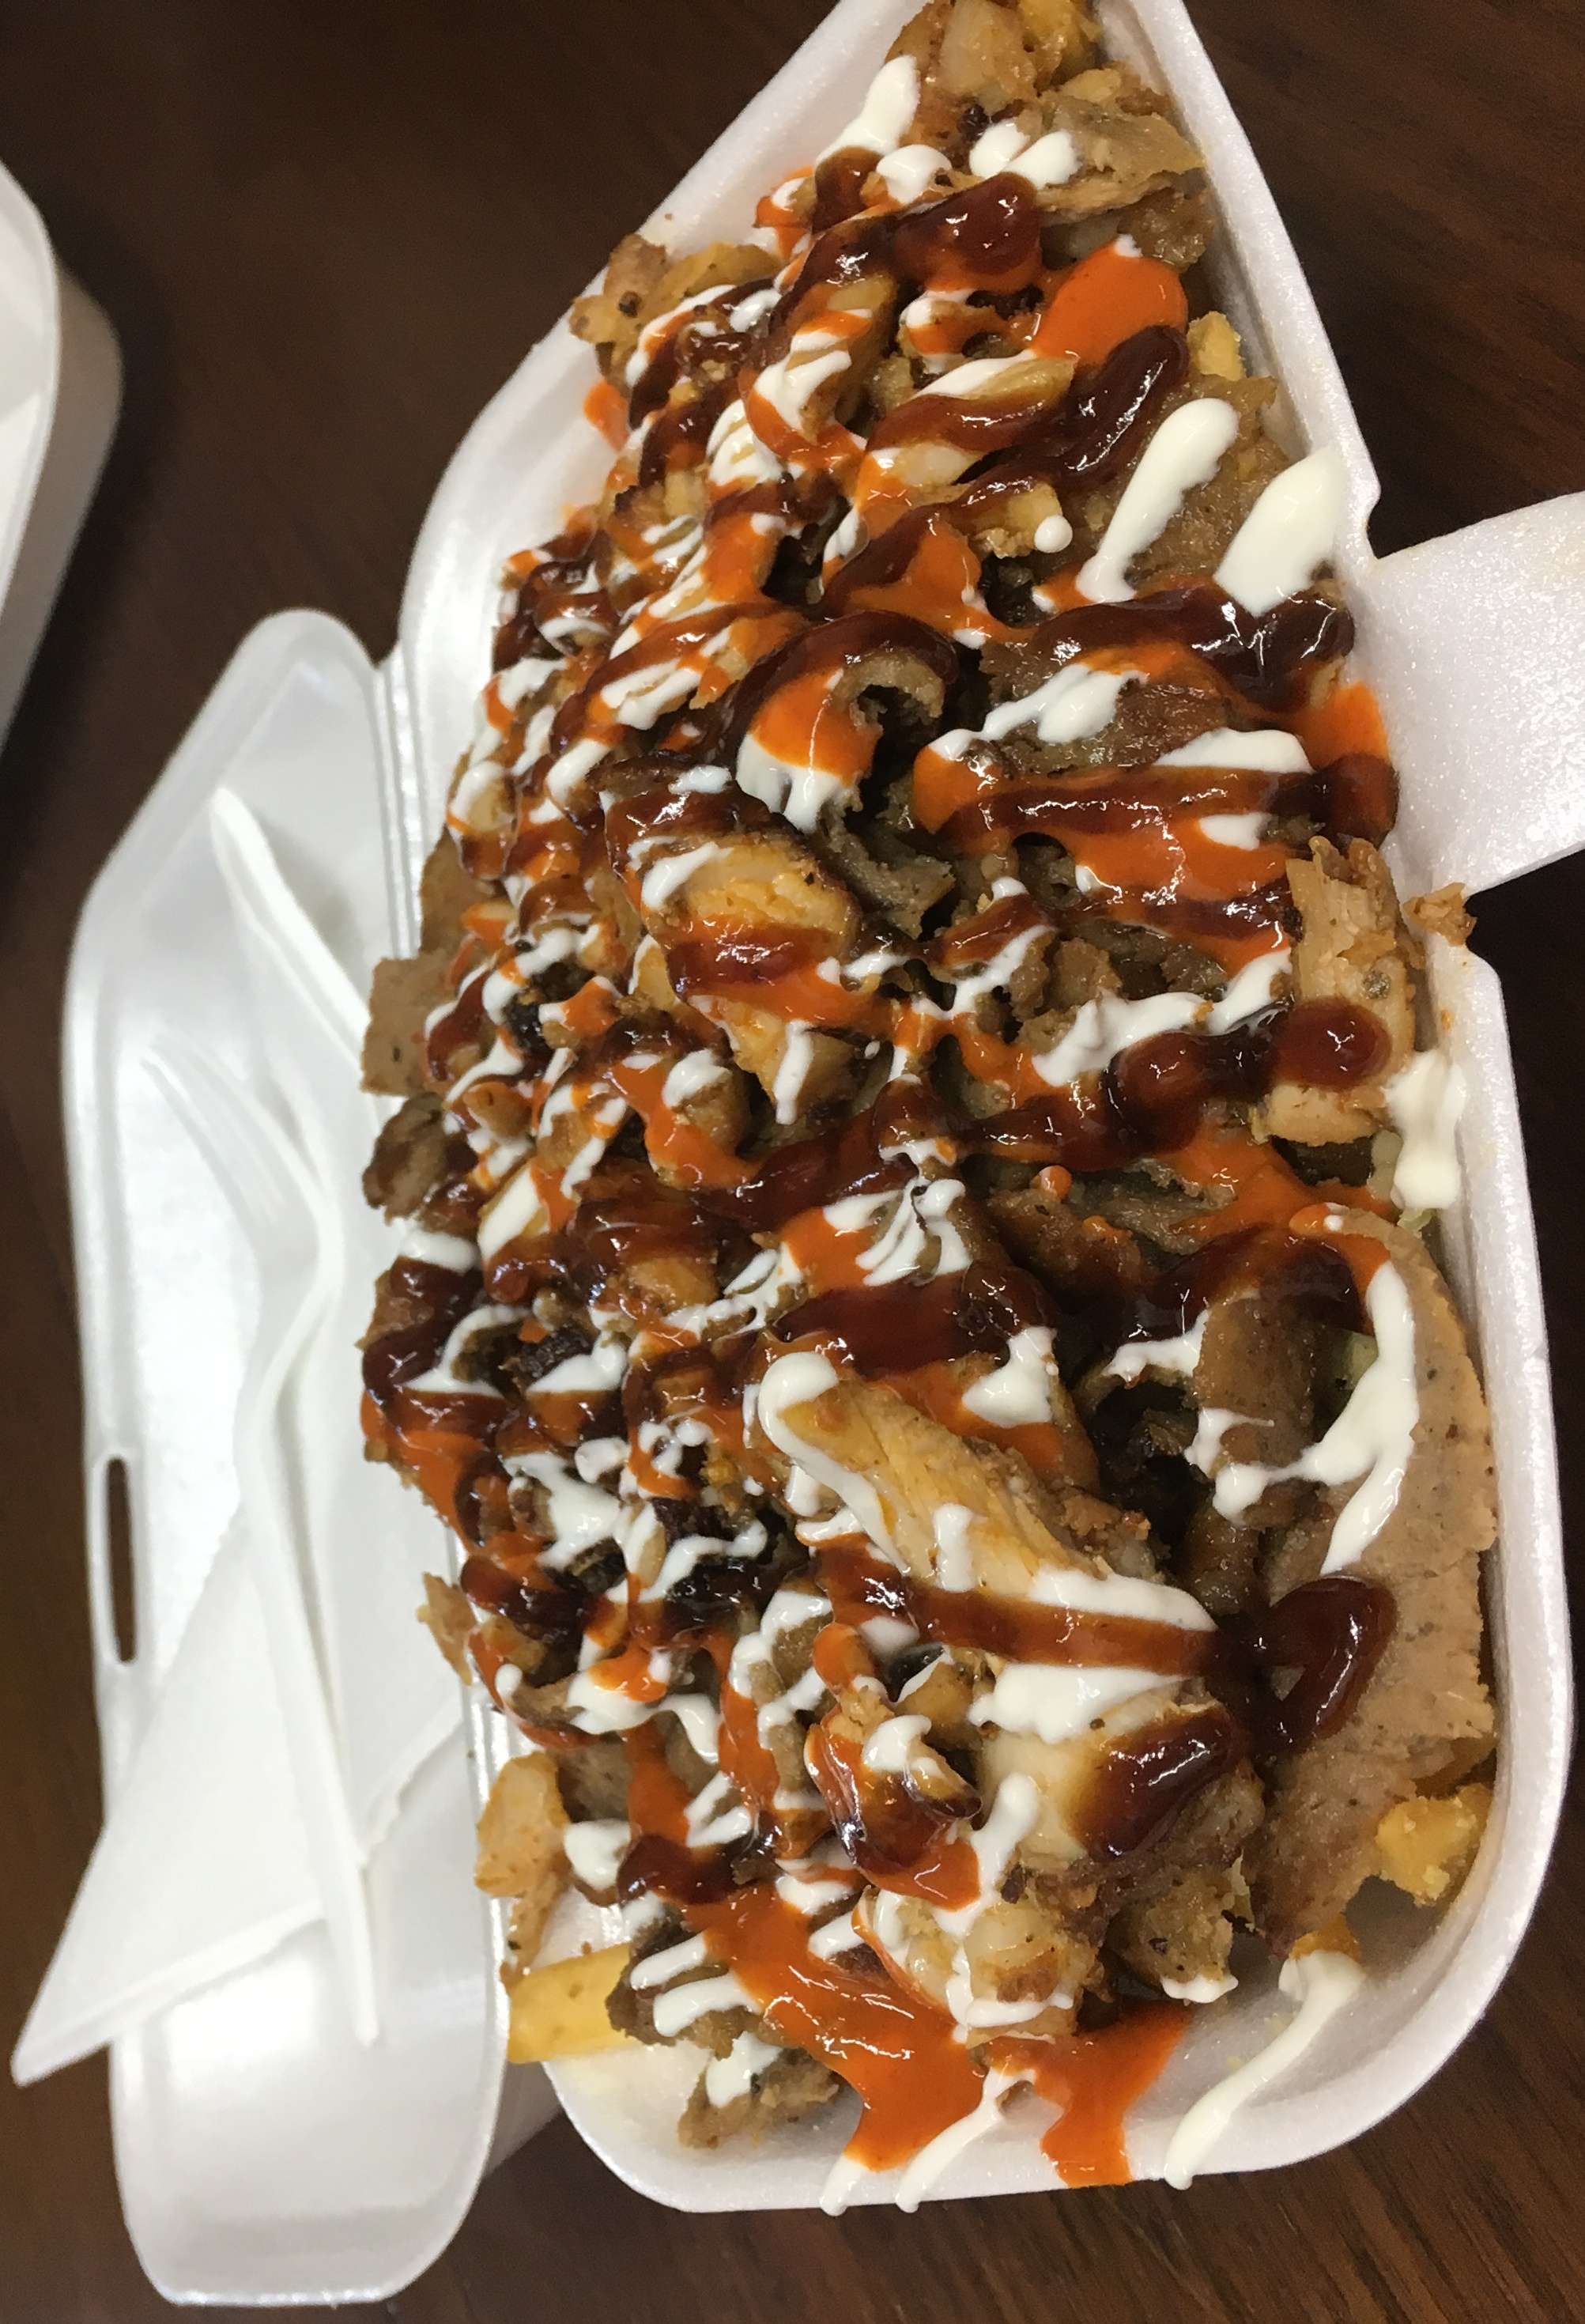 Halal Snack Pack Wikipedia